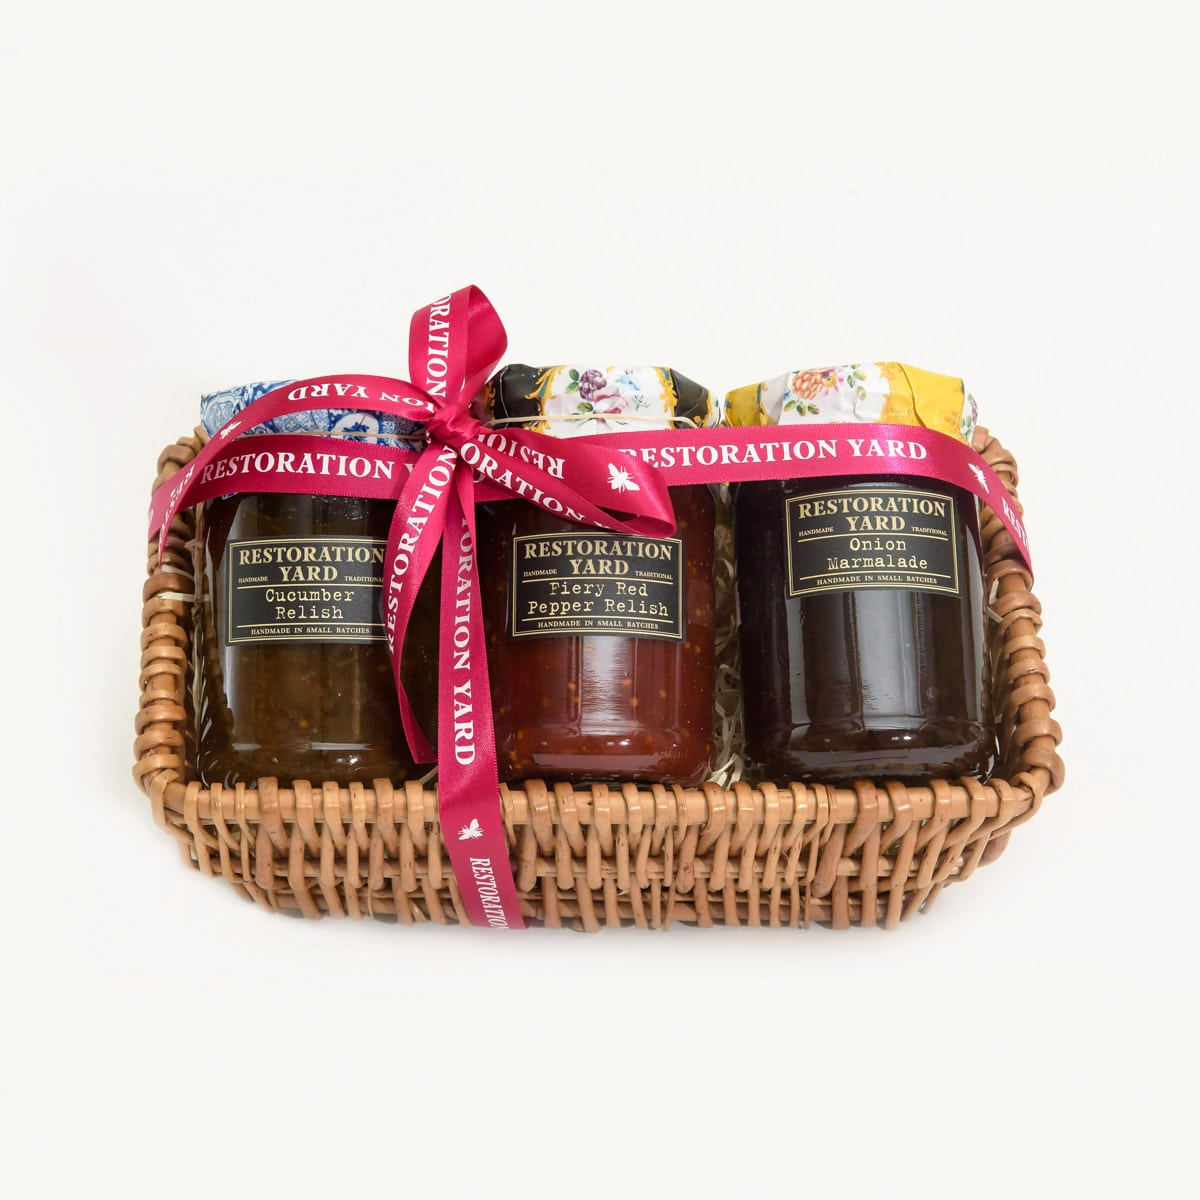 Trio Hampers Onion Marmalade Cucumber Relish Fiery Red Pepper Relish by Restoration Yard | Restoration Yard